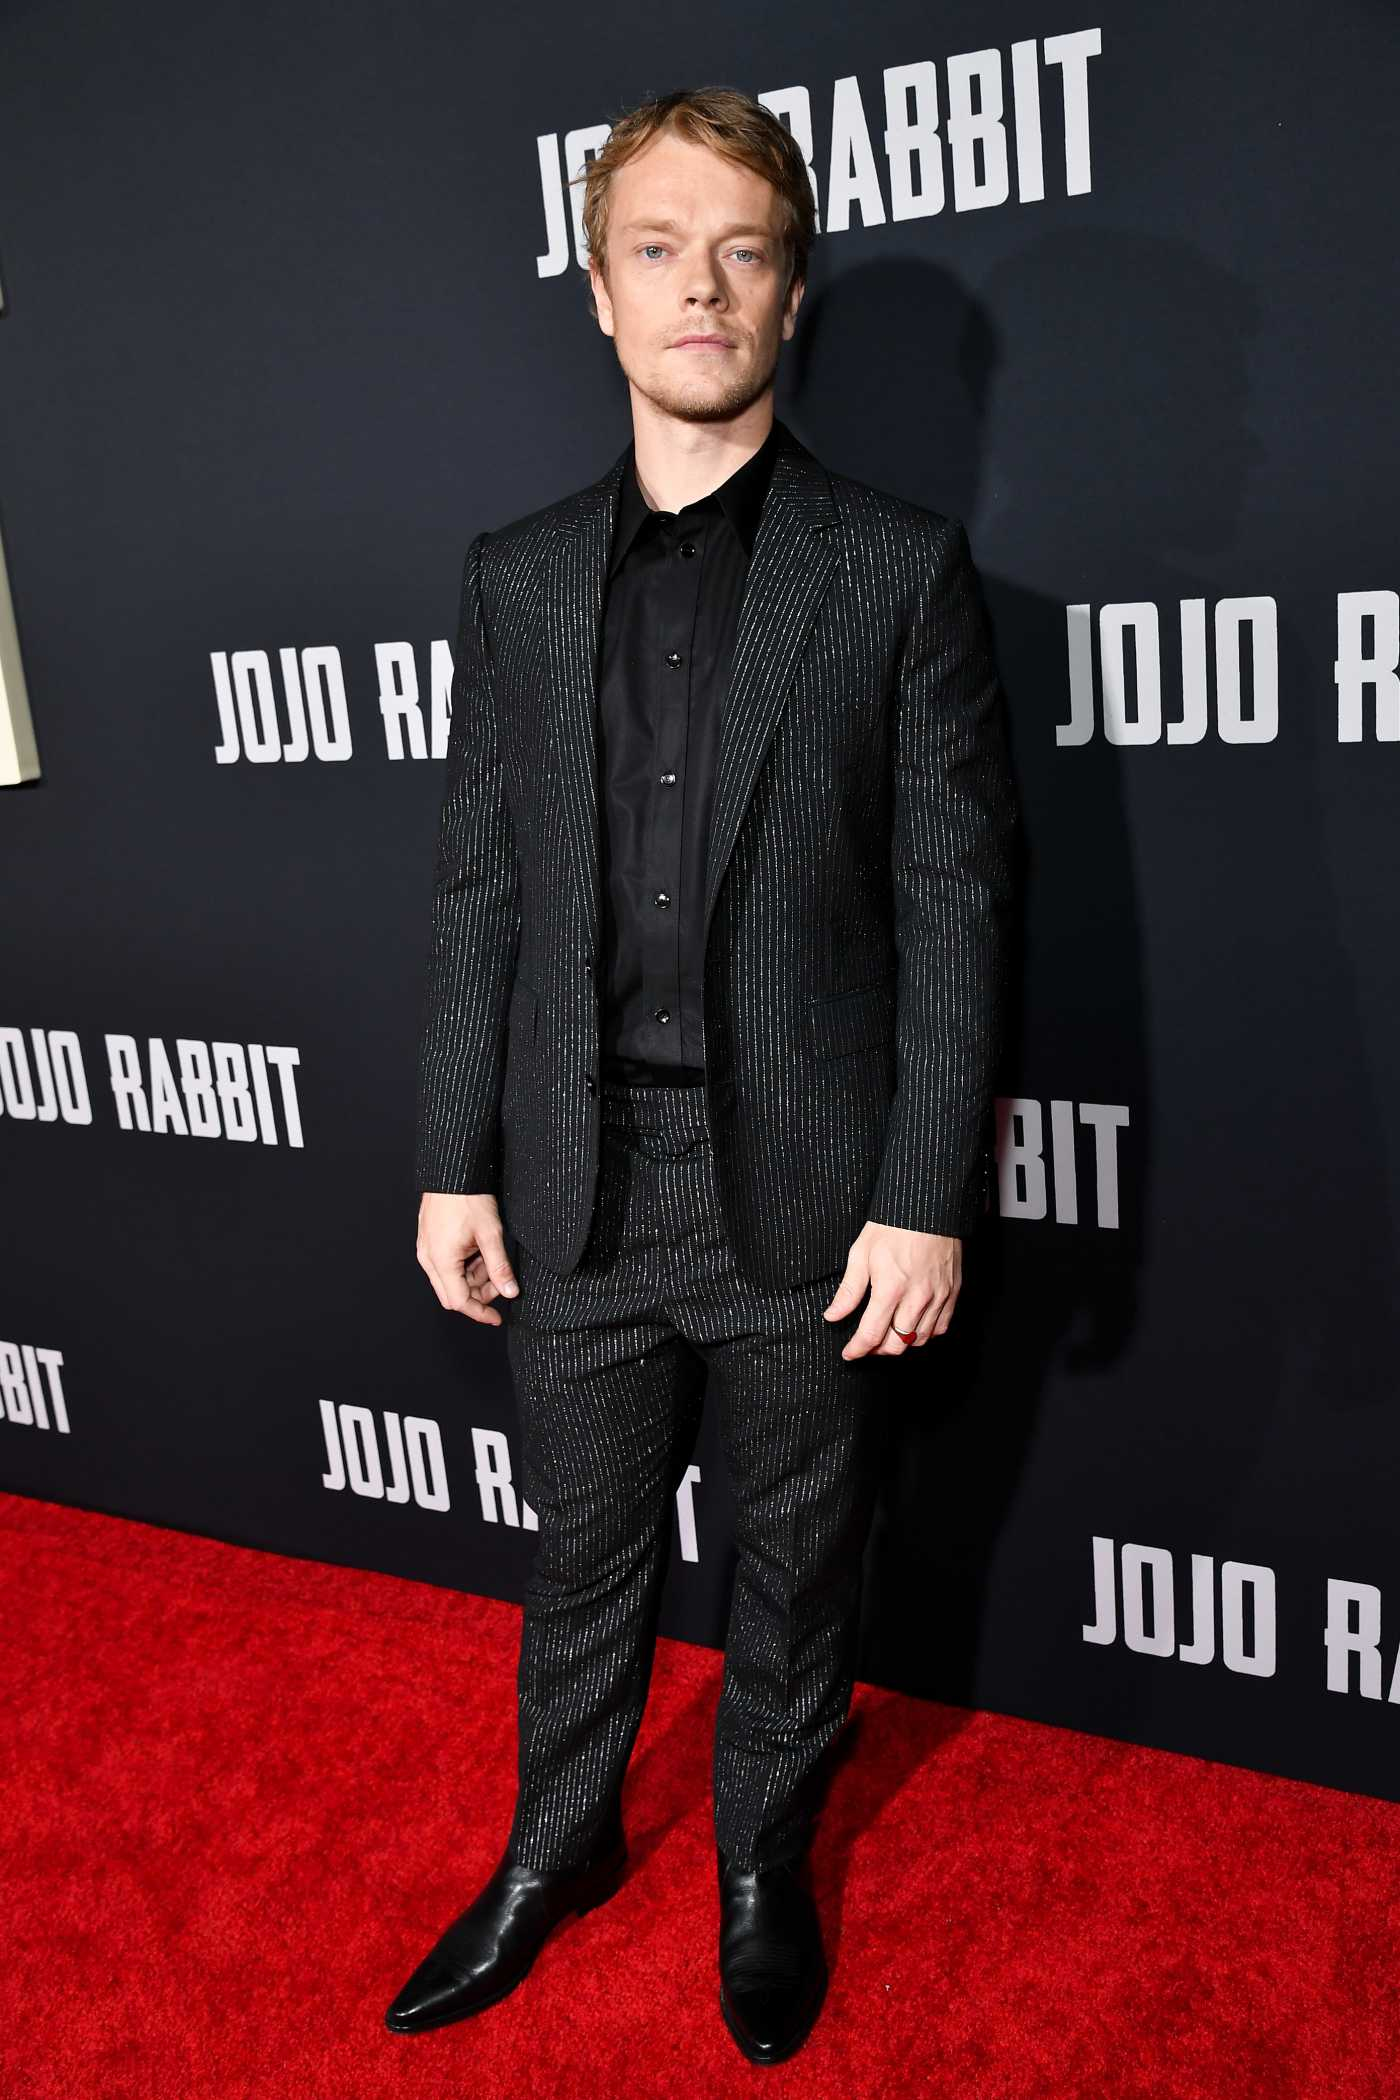 Alfie Allen Attends Jojo Rabbit Premiere in Los Angeles 10/15/2019